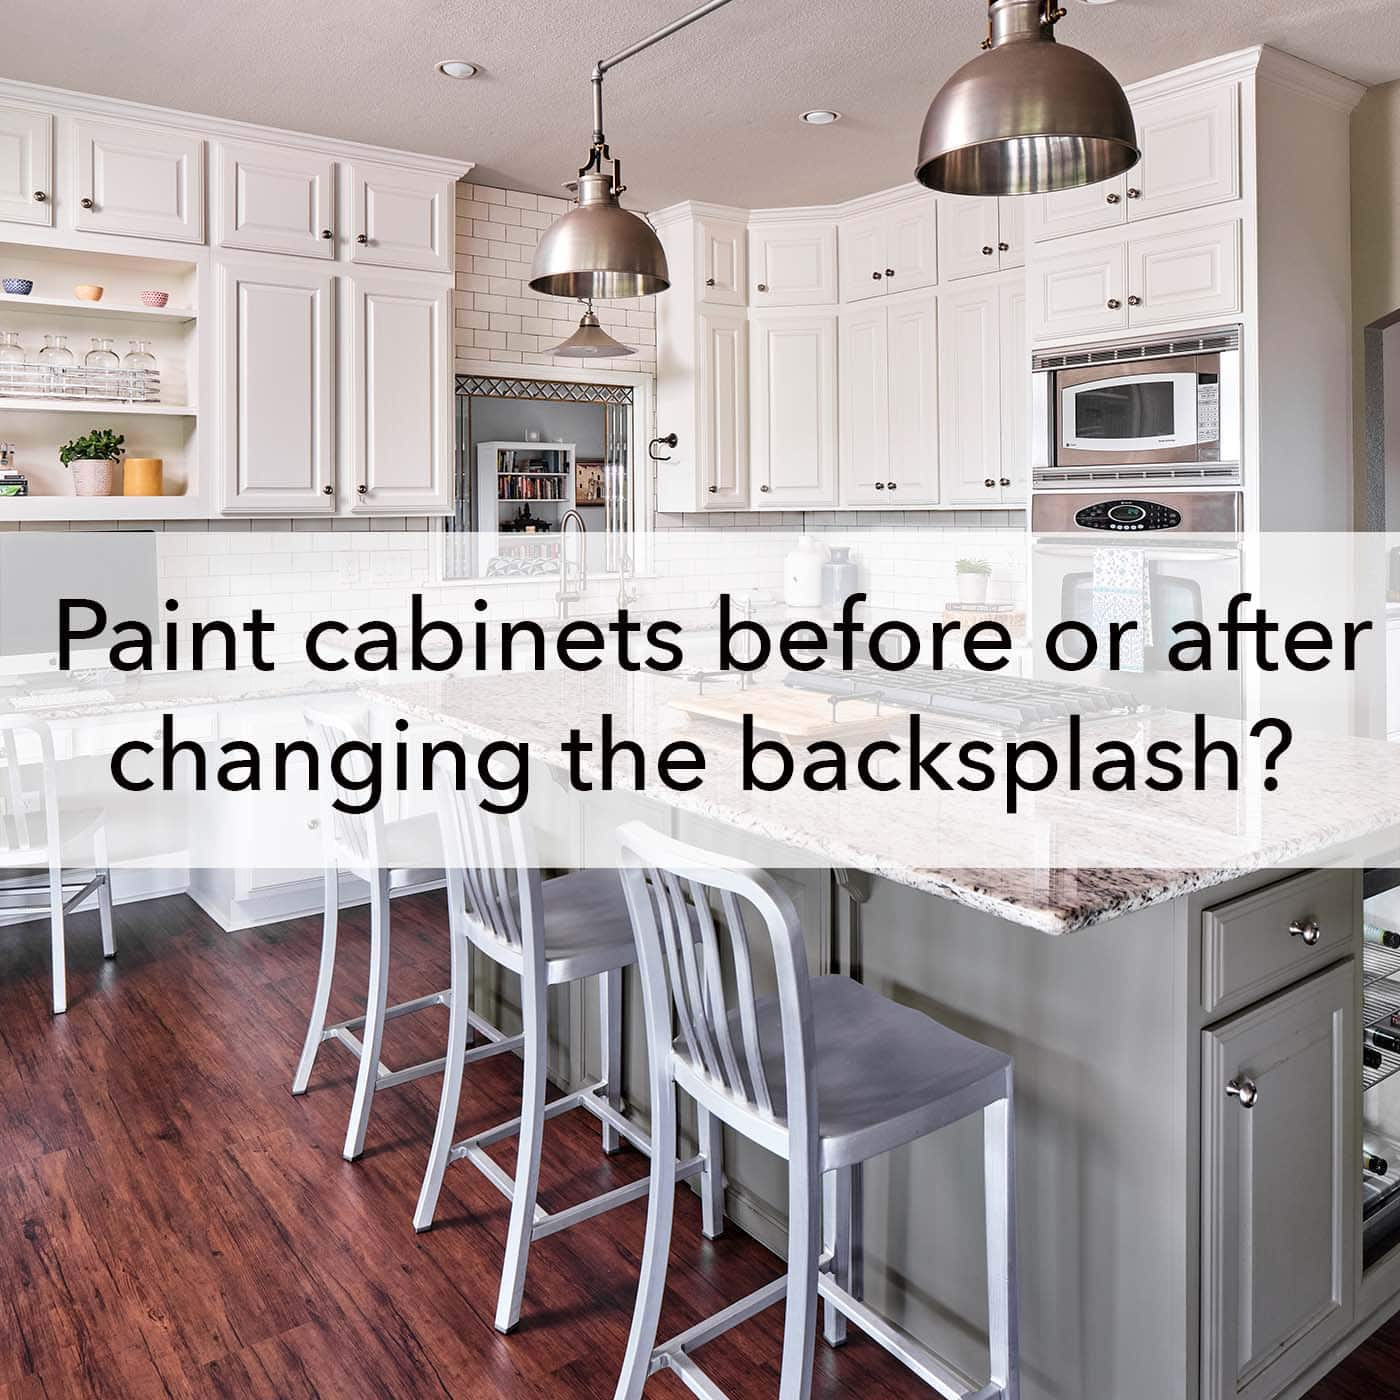 Painting Cabinets Before Or After Changing The Backsplash